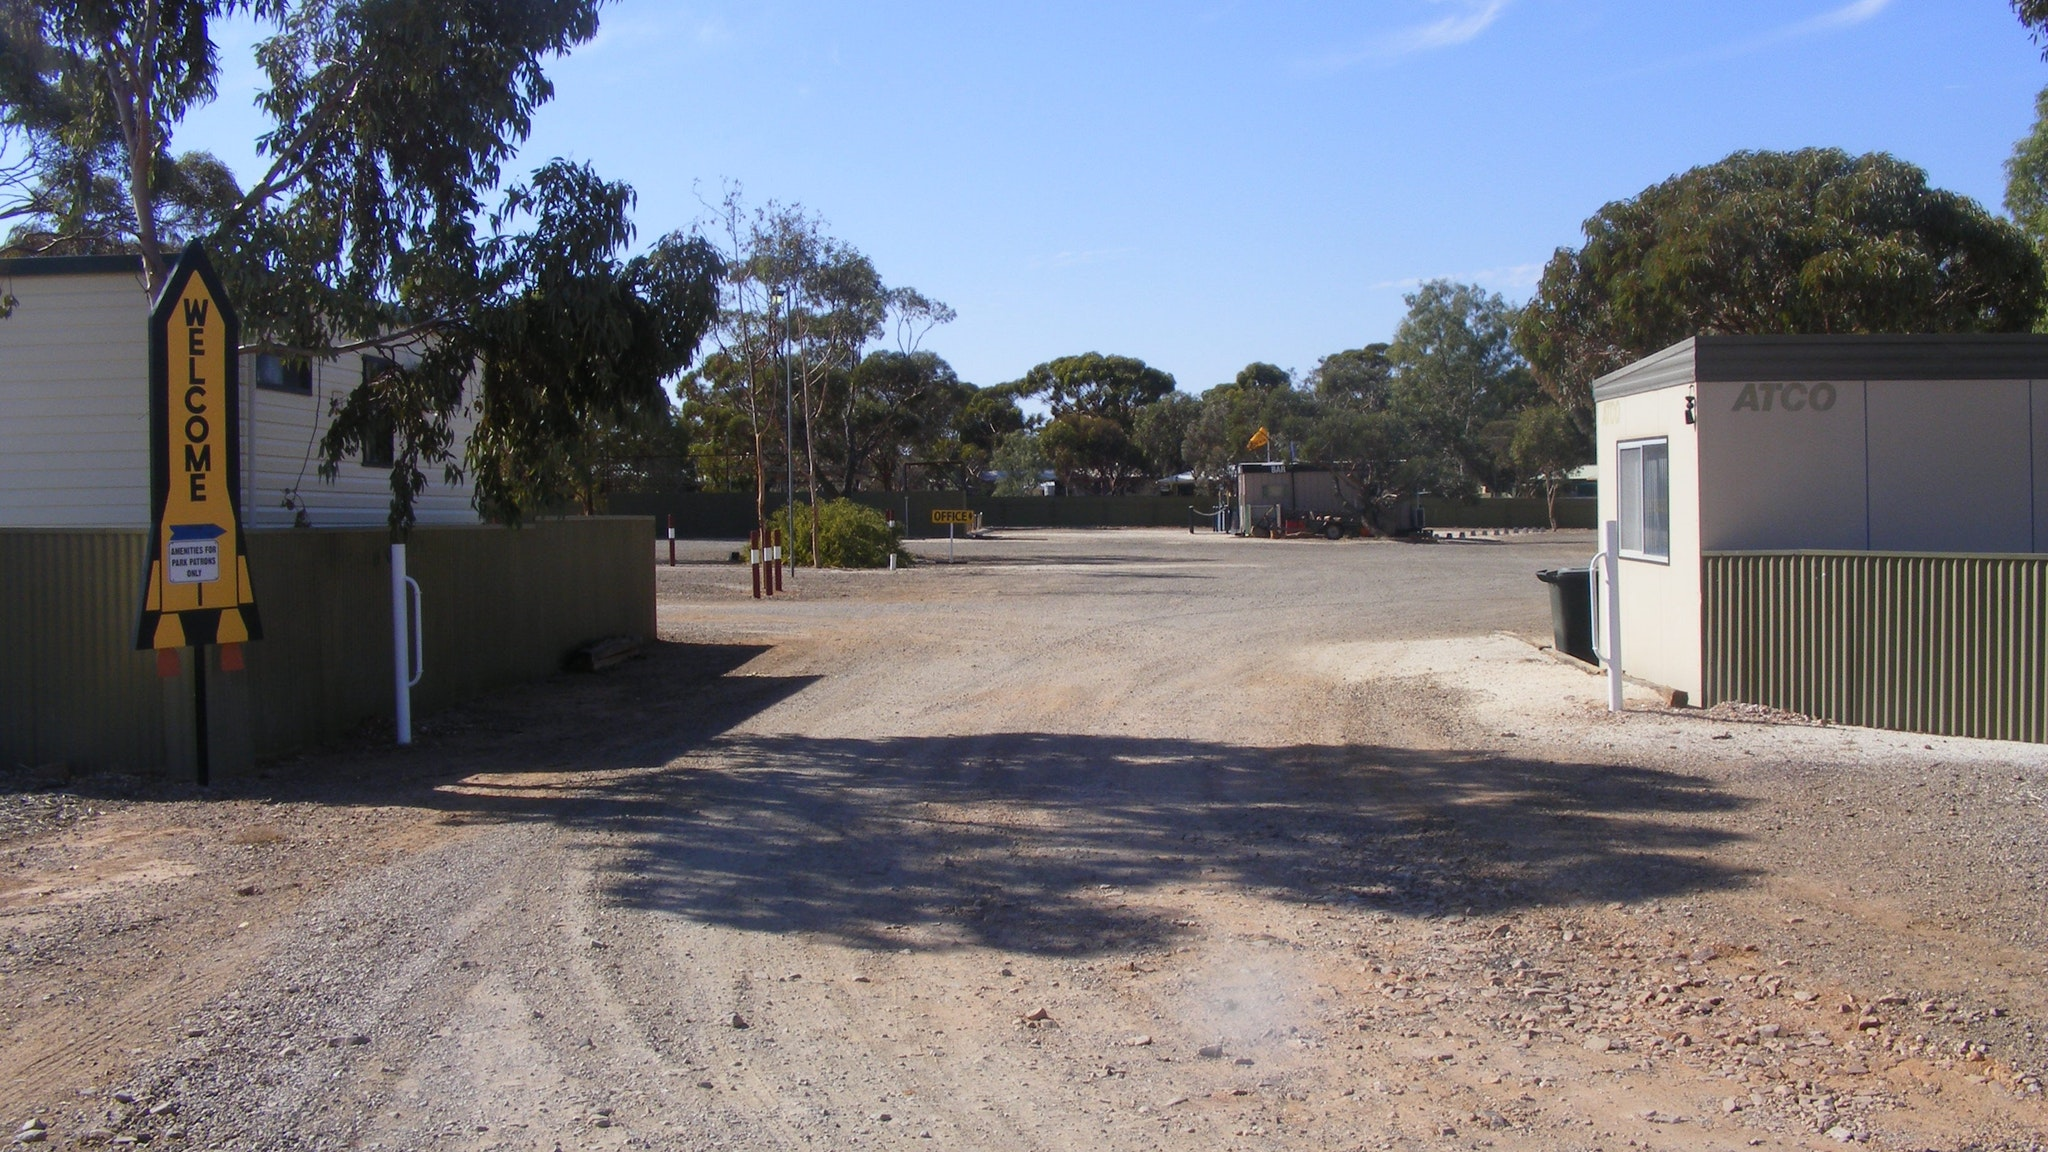 Woomera Travellers Village and Caravan Park - Stayed